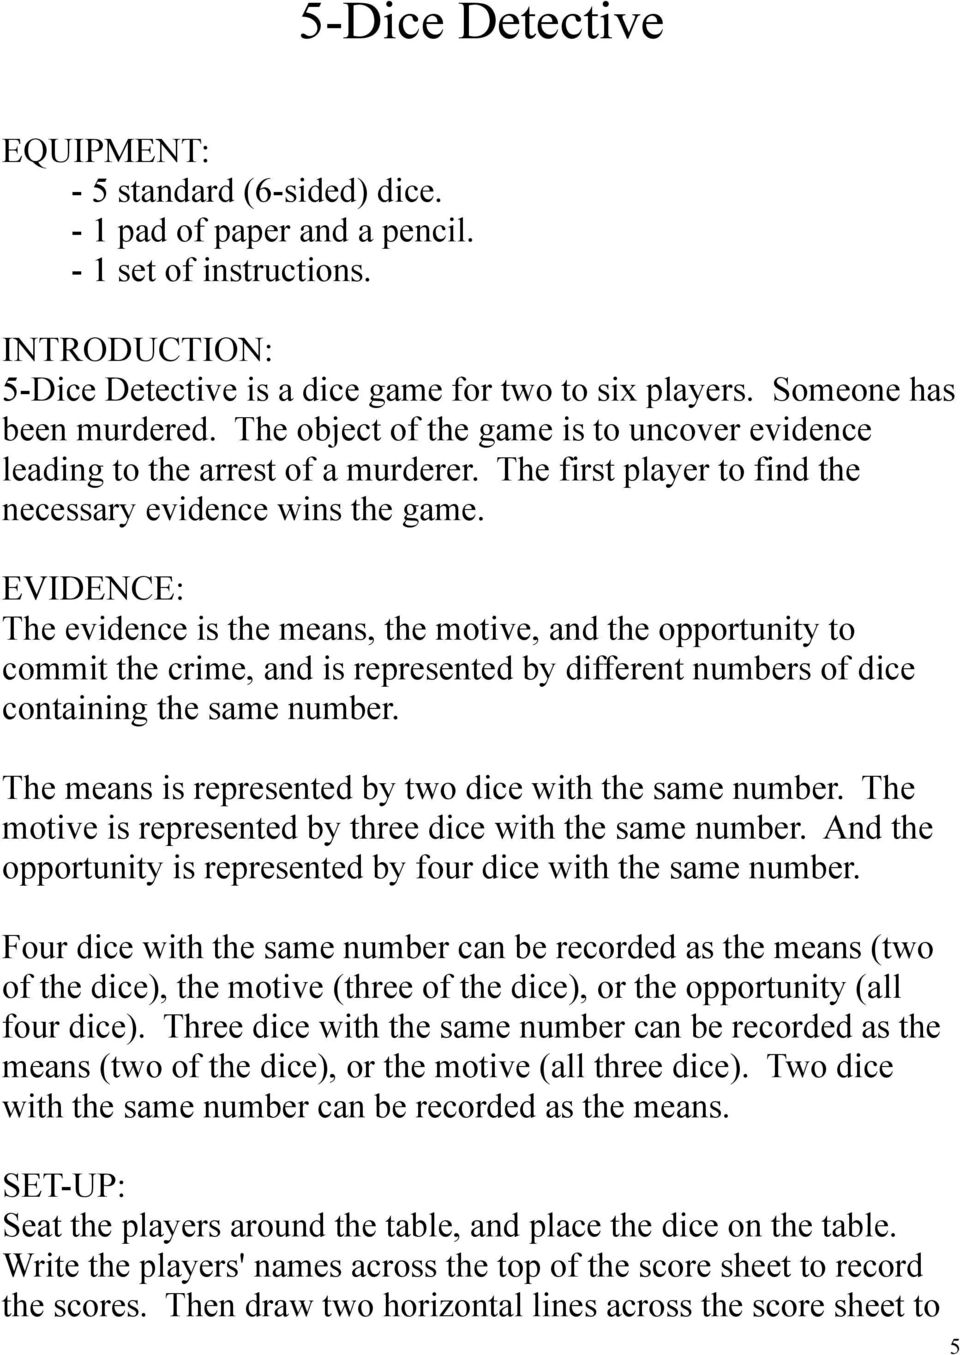 EVIDENCE: The evidence is the means, the motive, and the opportunity to commit the crime, and is represented by different numbers of dice containing the same number.